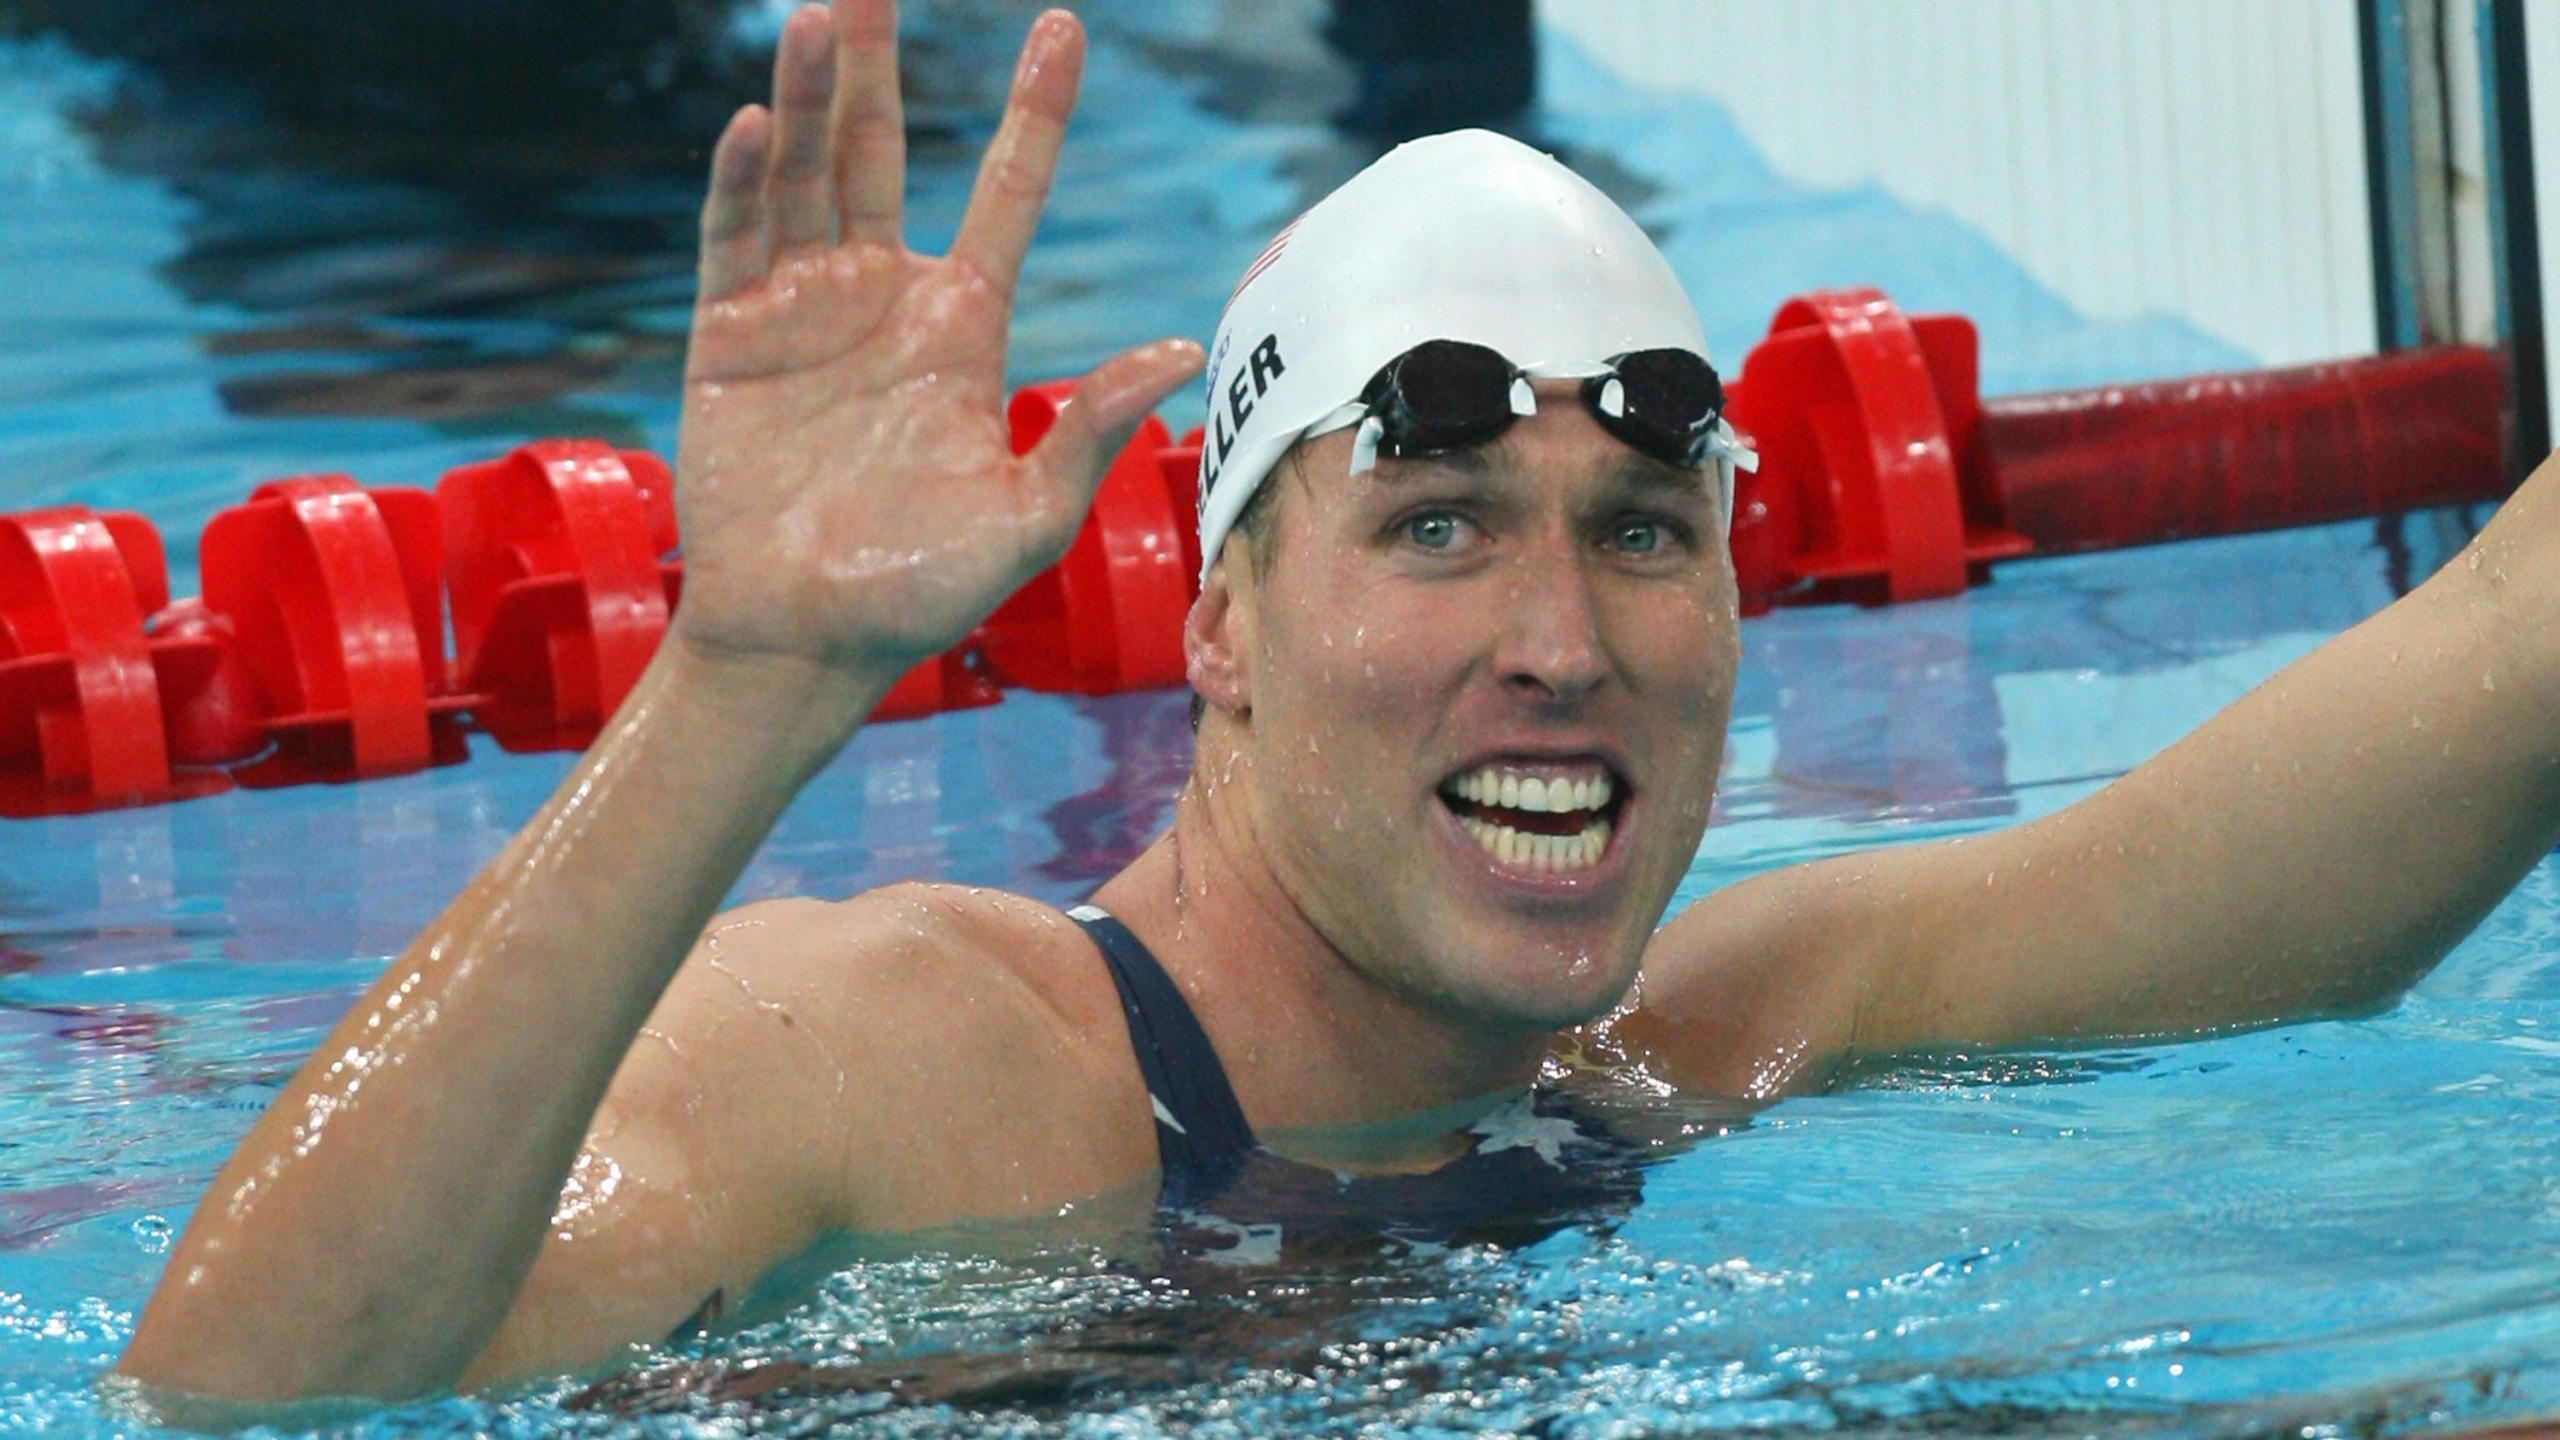 Swimmer Klete Keller smiles after winning the men's 4 x 200m freestyle relay swimming heat in the 2008 Beijing Olympic Games on Aug. 12, 2008. (Greg Wood / AFP / Getty Images)